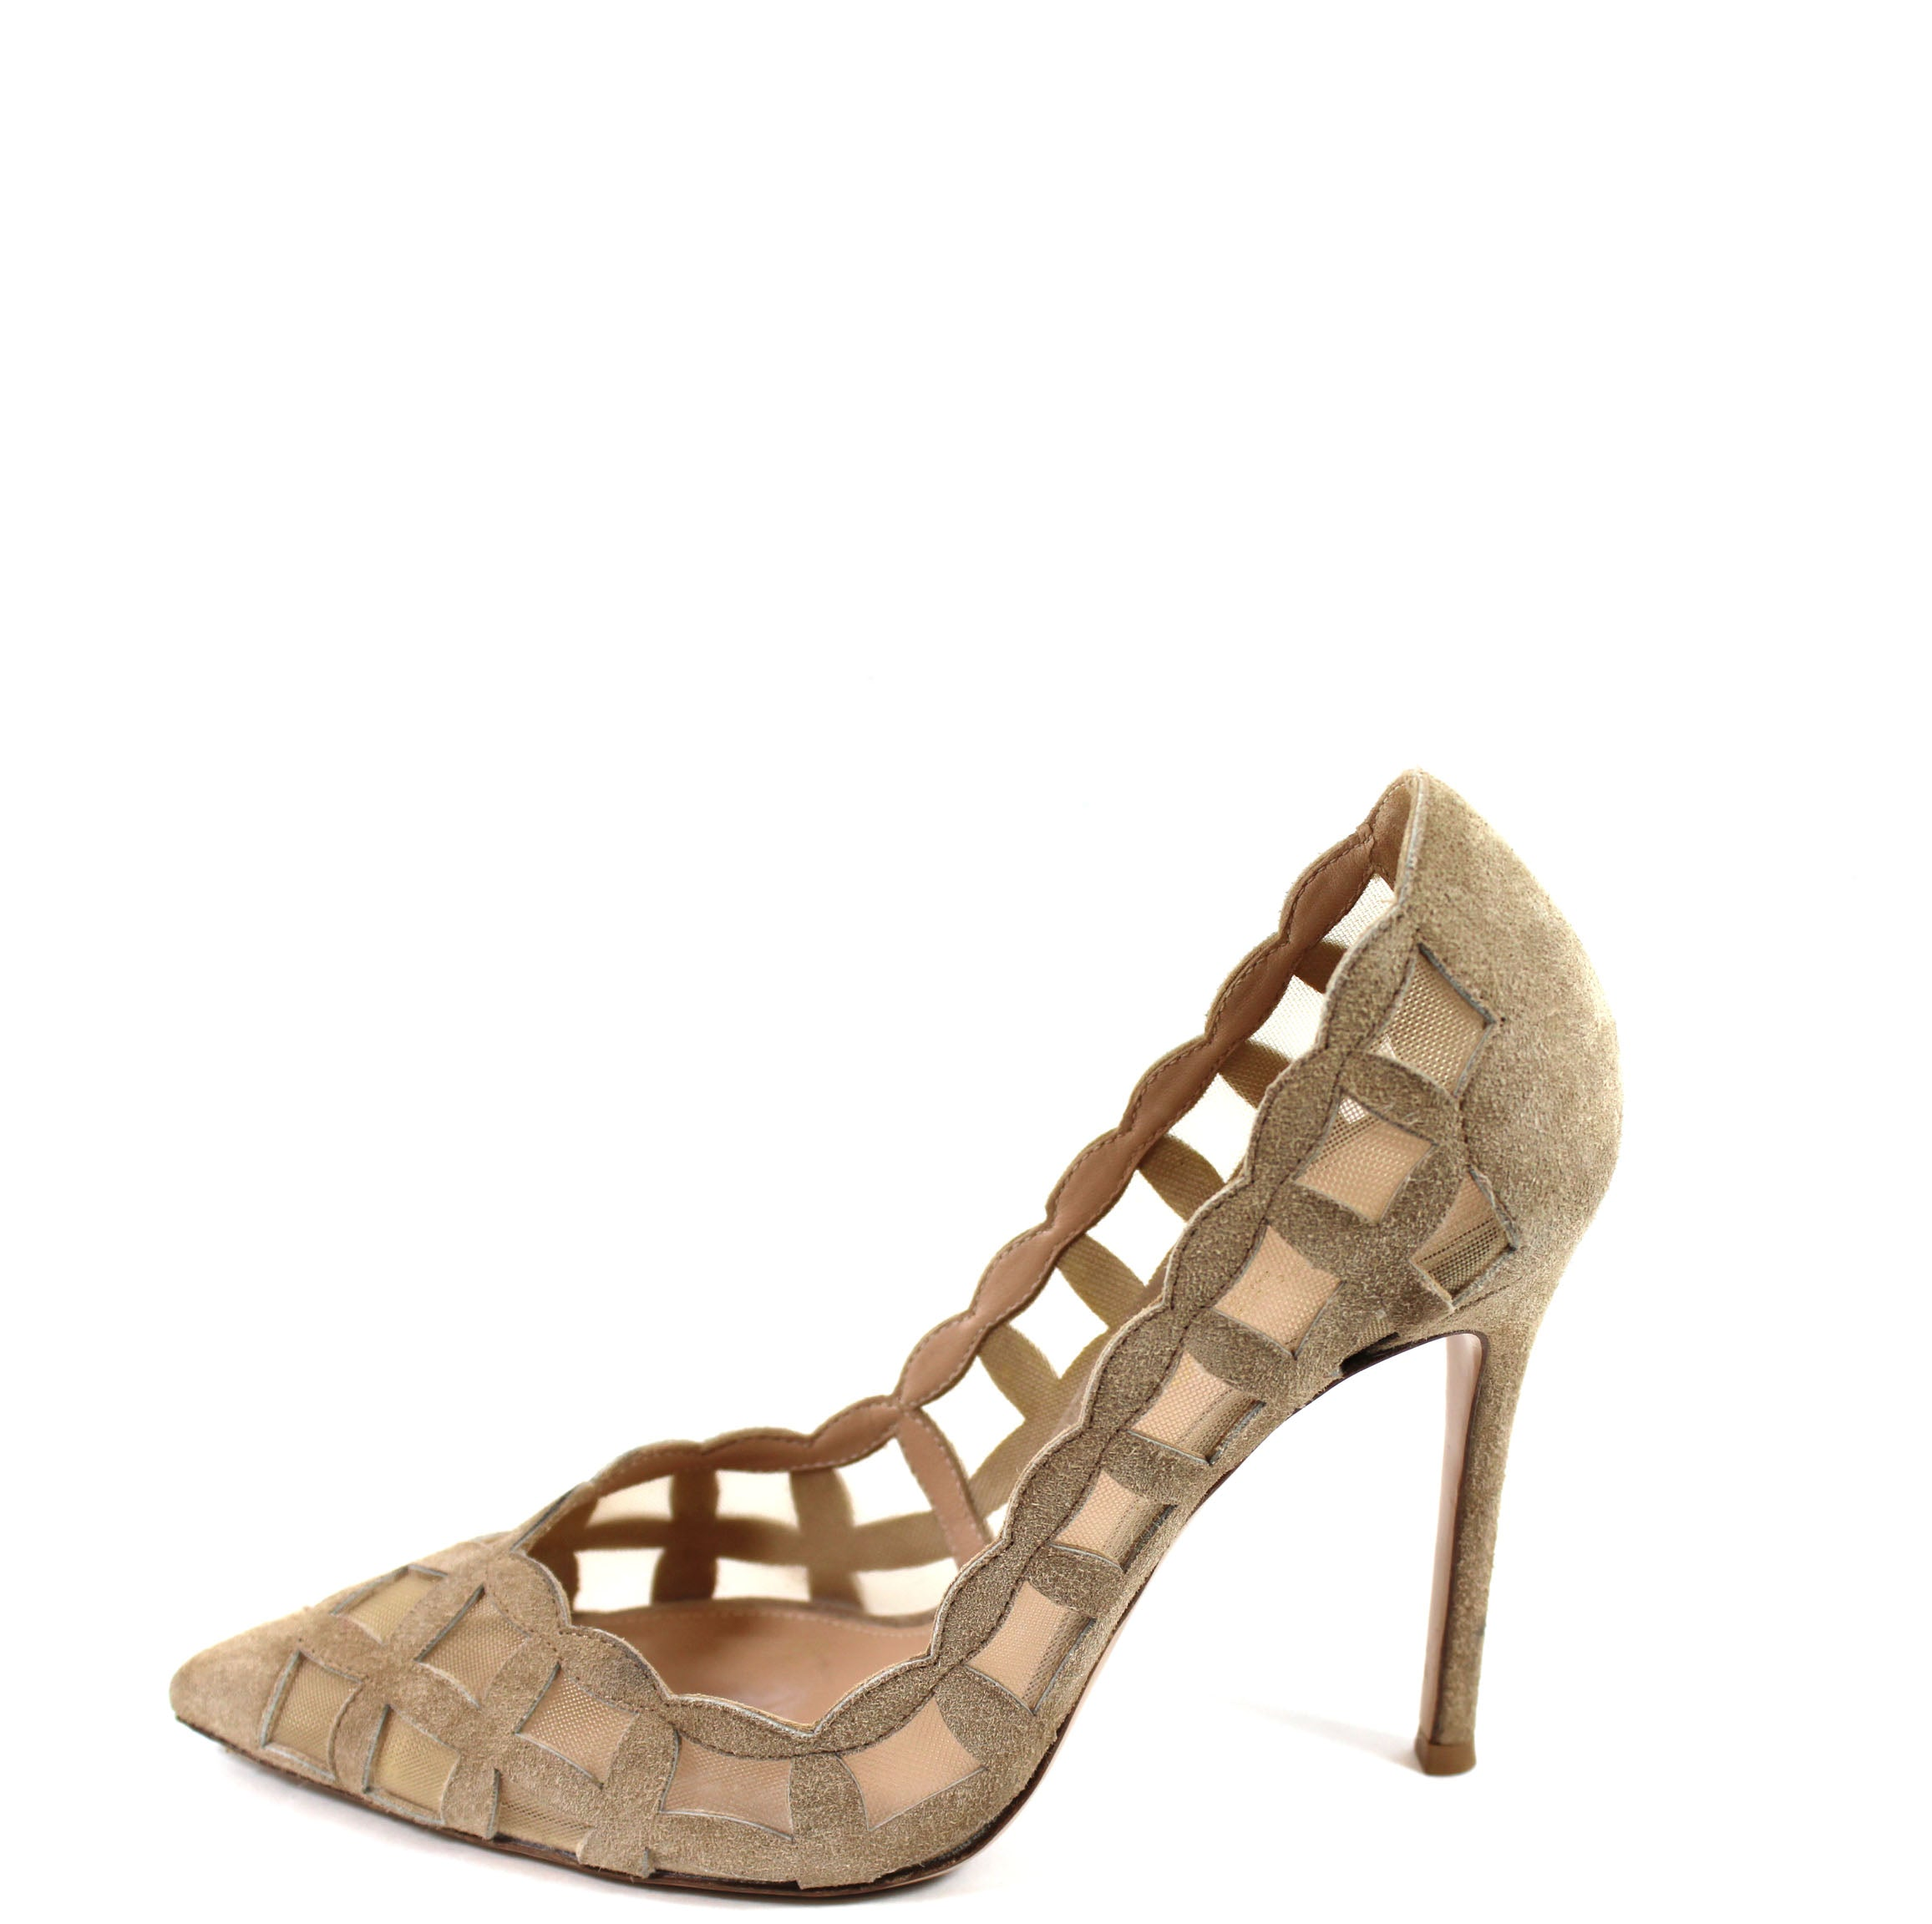 aaf5906d6b8 Gianvito Rossi Beige Suede Cut-out Pumps (Size 37) – Encore Consignment